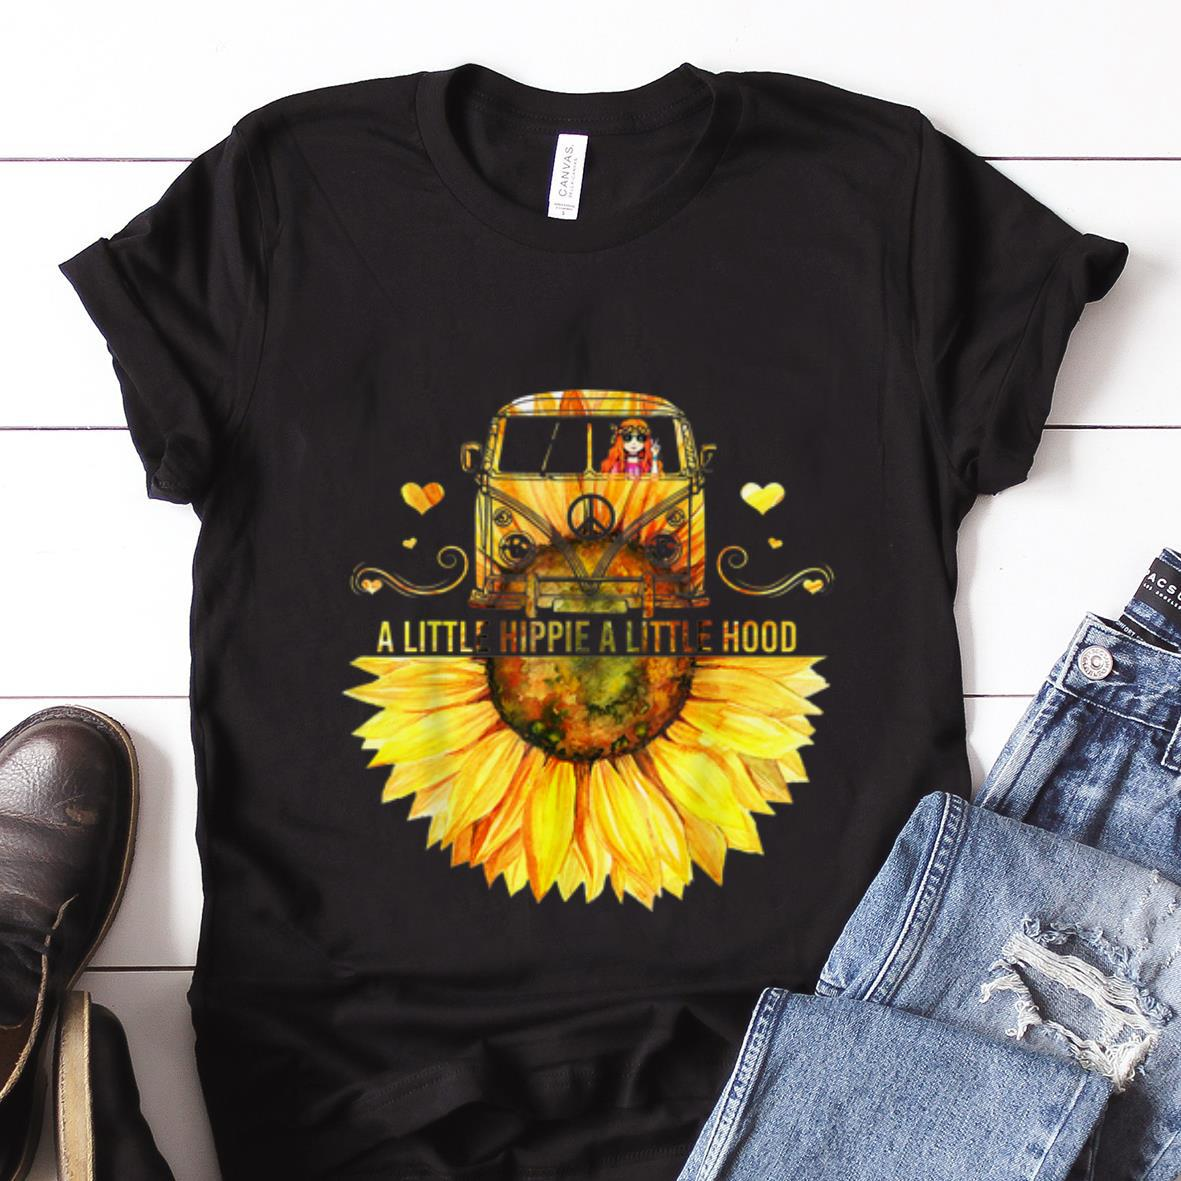 Best price Sunflower Peace Bus A Little Hippie A Little Hood shirt 1 - Best price Sunflower Peace Bus A Little Hippie A Little Hood shirt